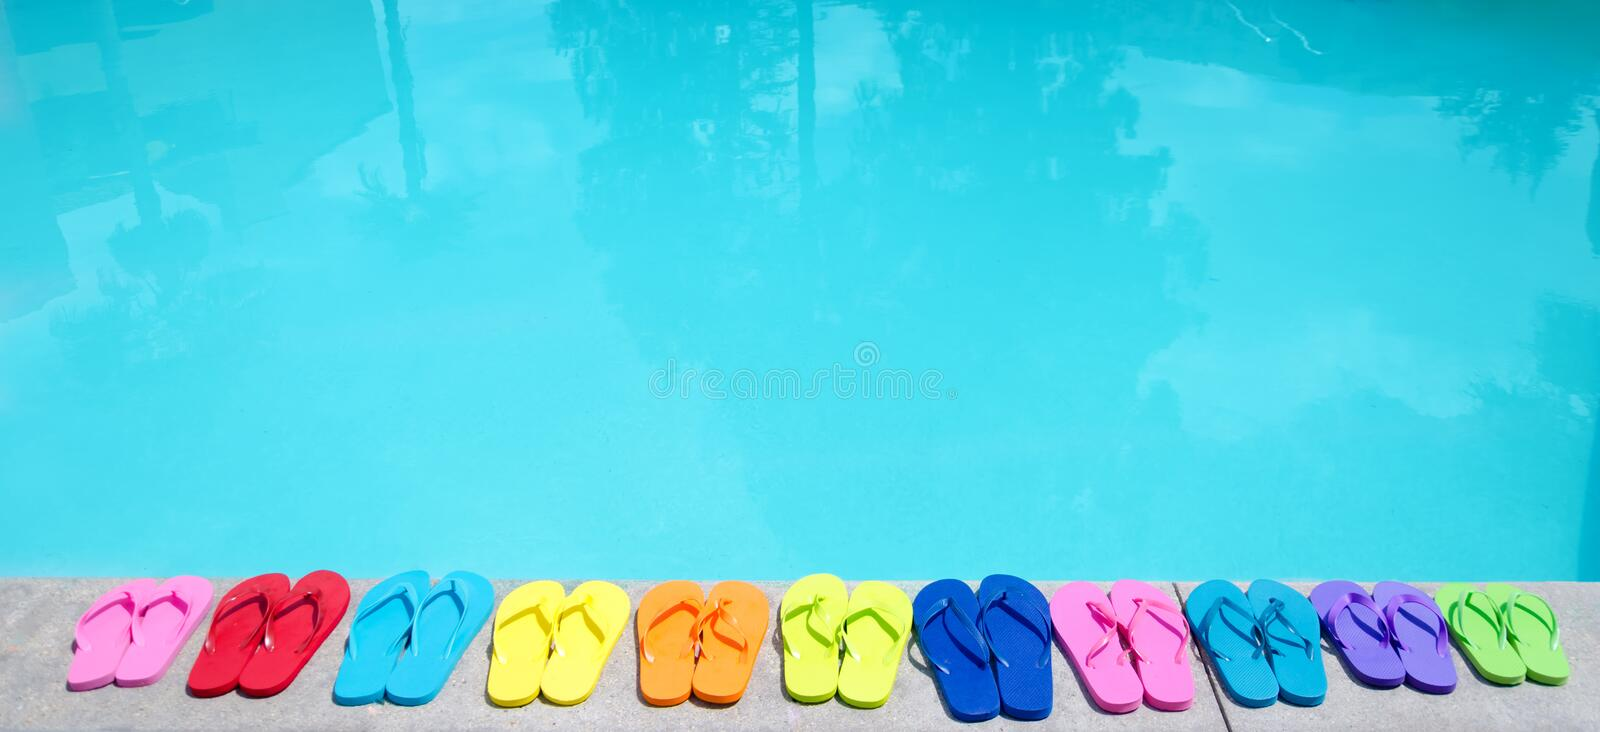 Color flip flops by the pool. Color flip flops by the swimming pool in sunny day royalty free stock image